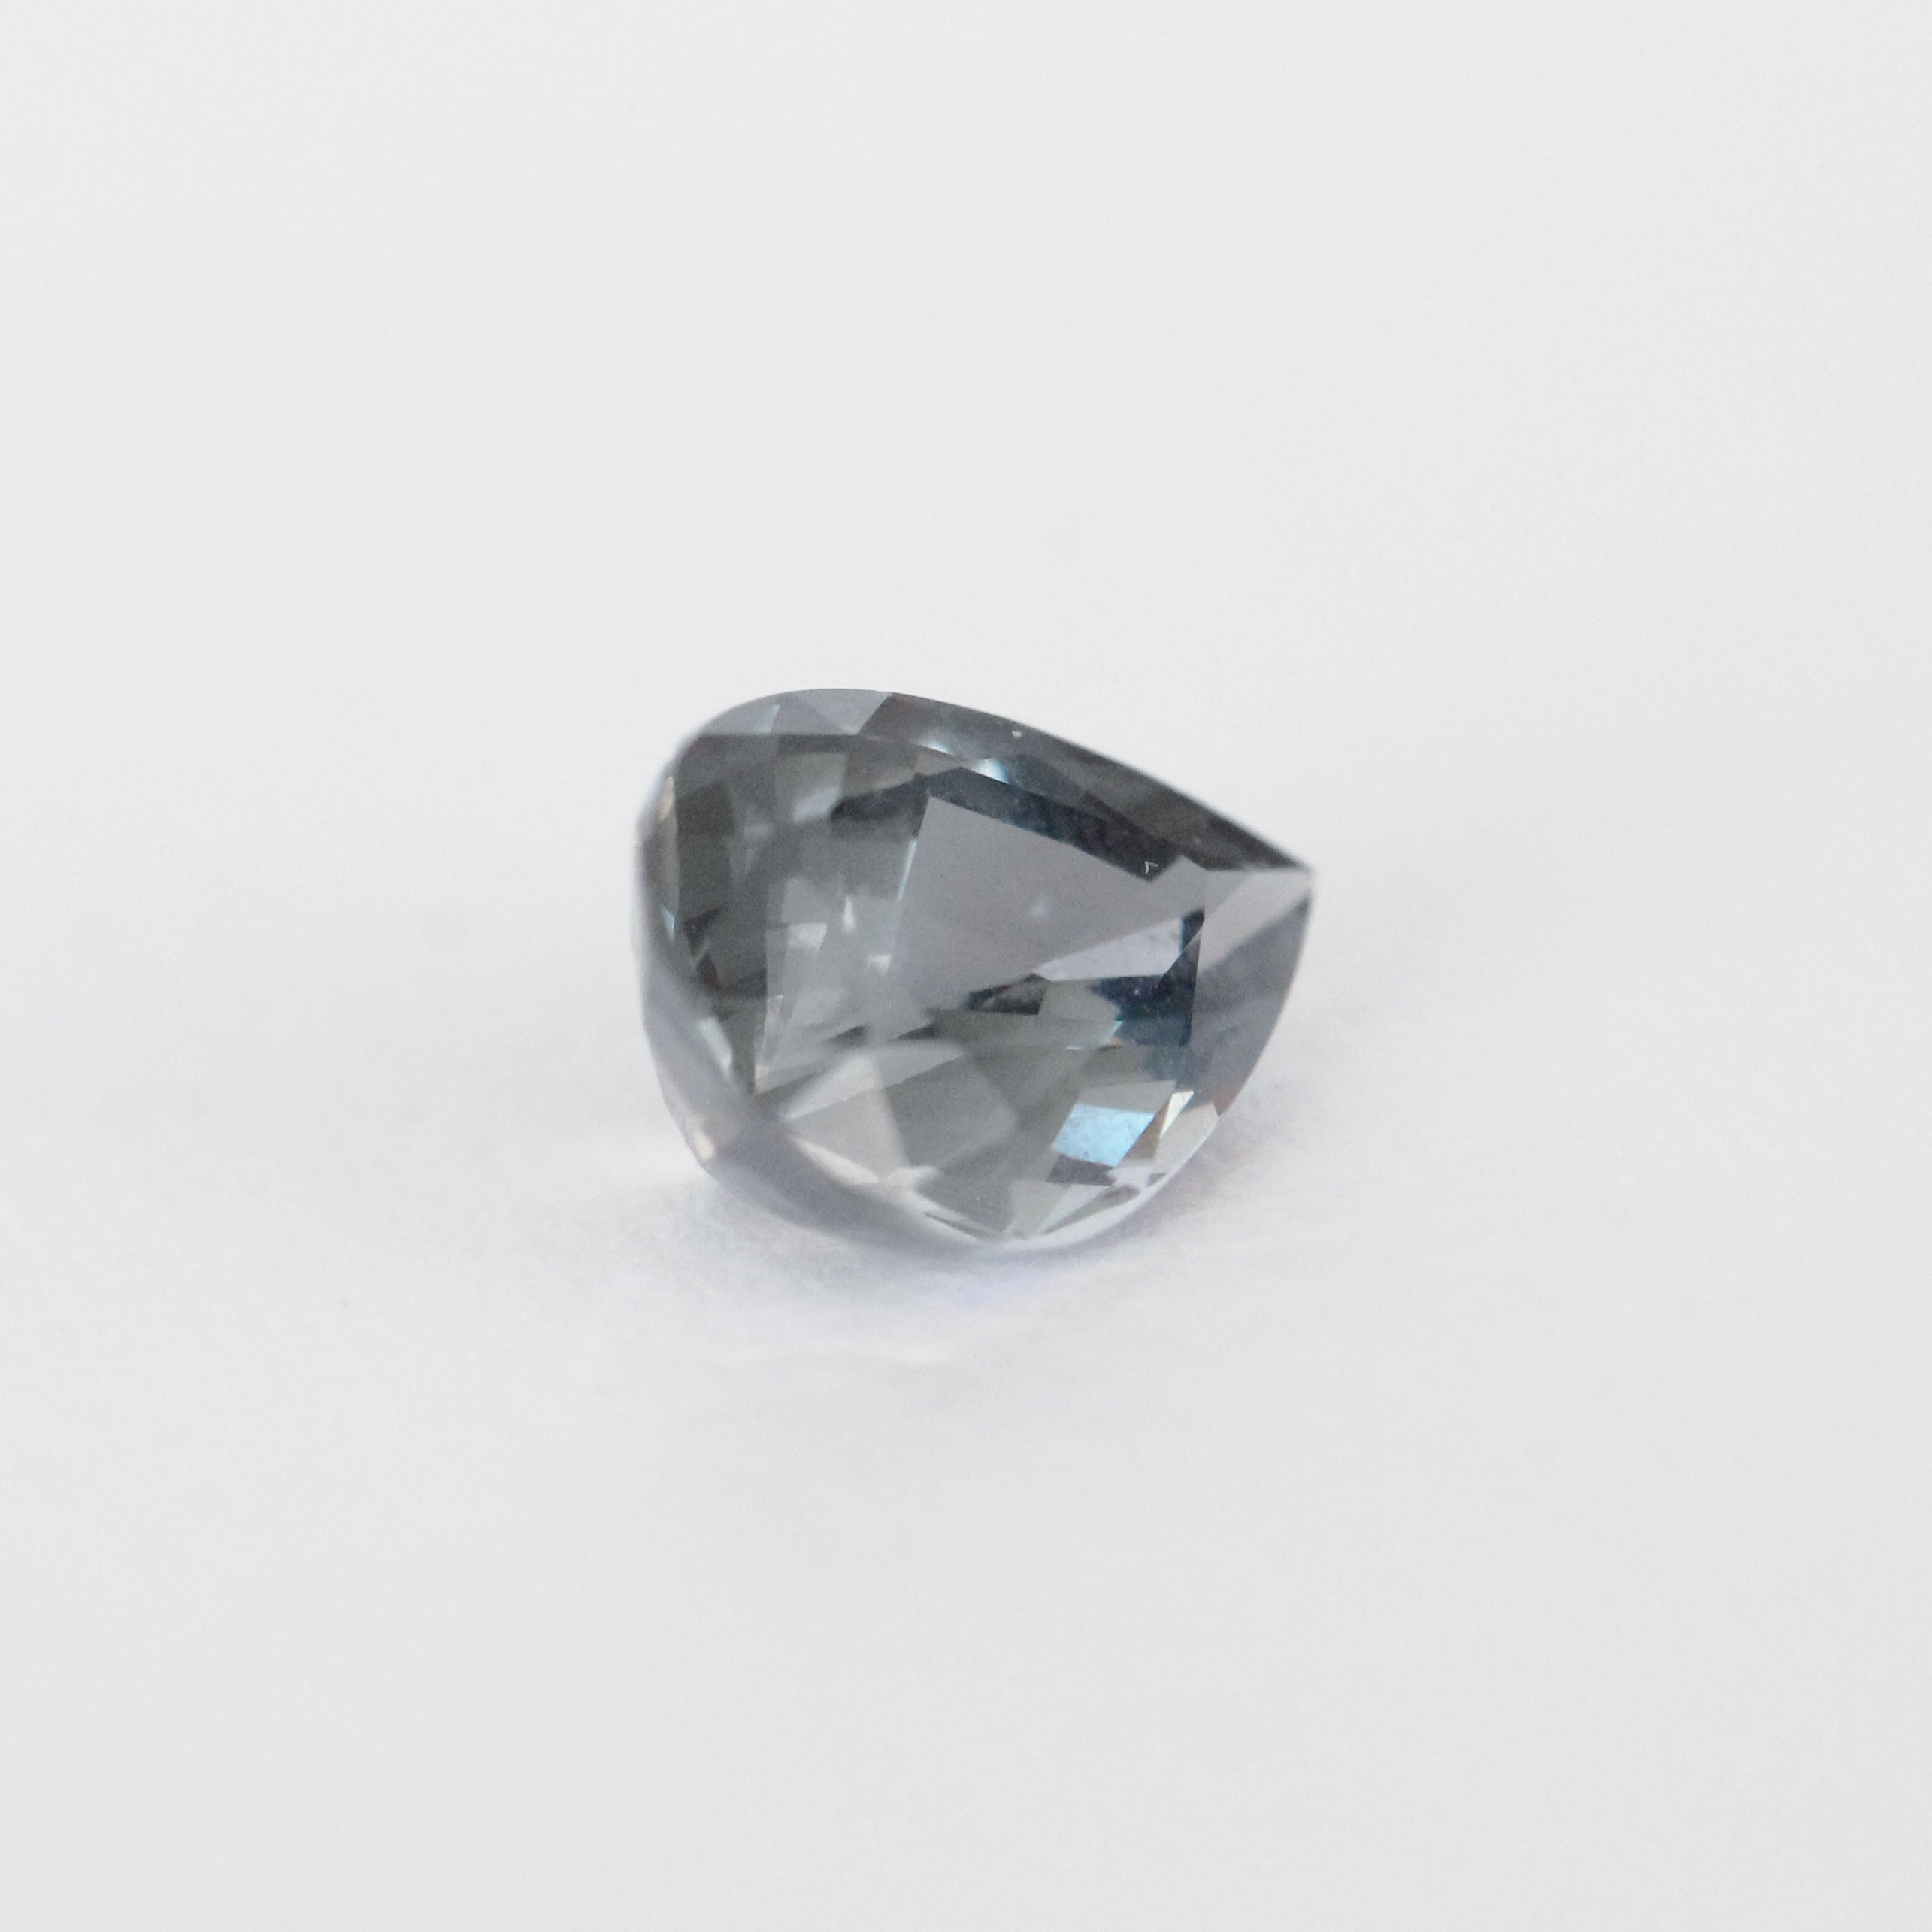 1.30 Carat Pear Gray Spinel - Inventory Code SP13 - Celestial Diamonds ® by Midwinter Co.